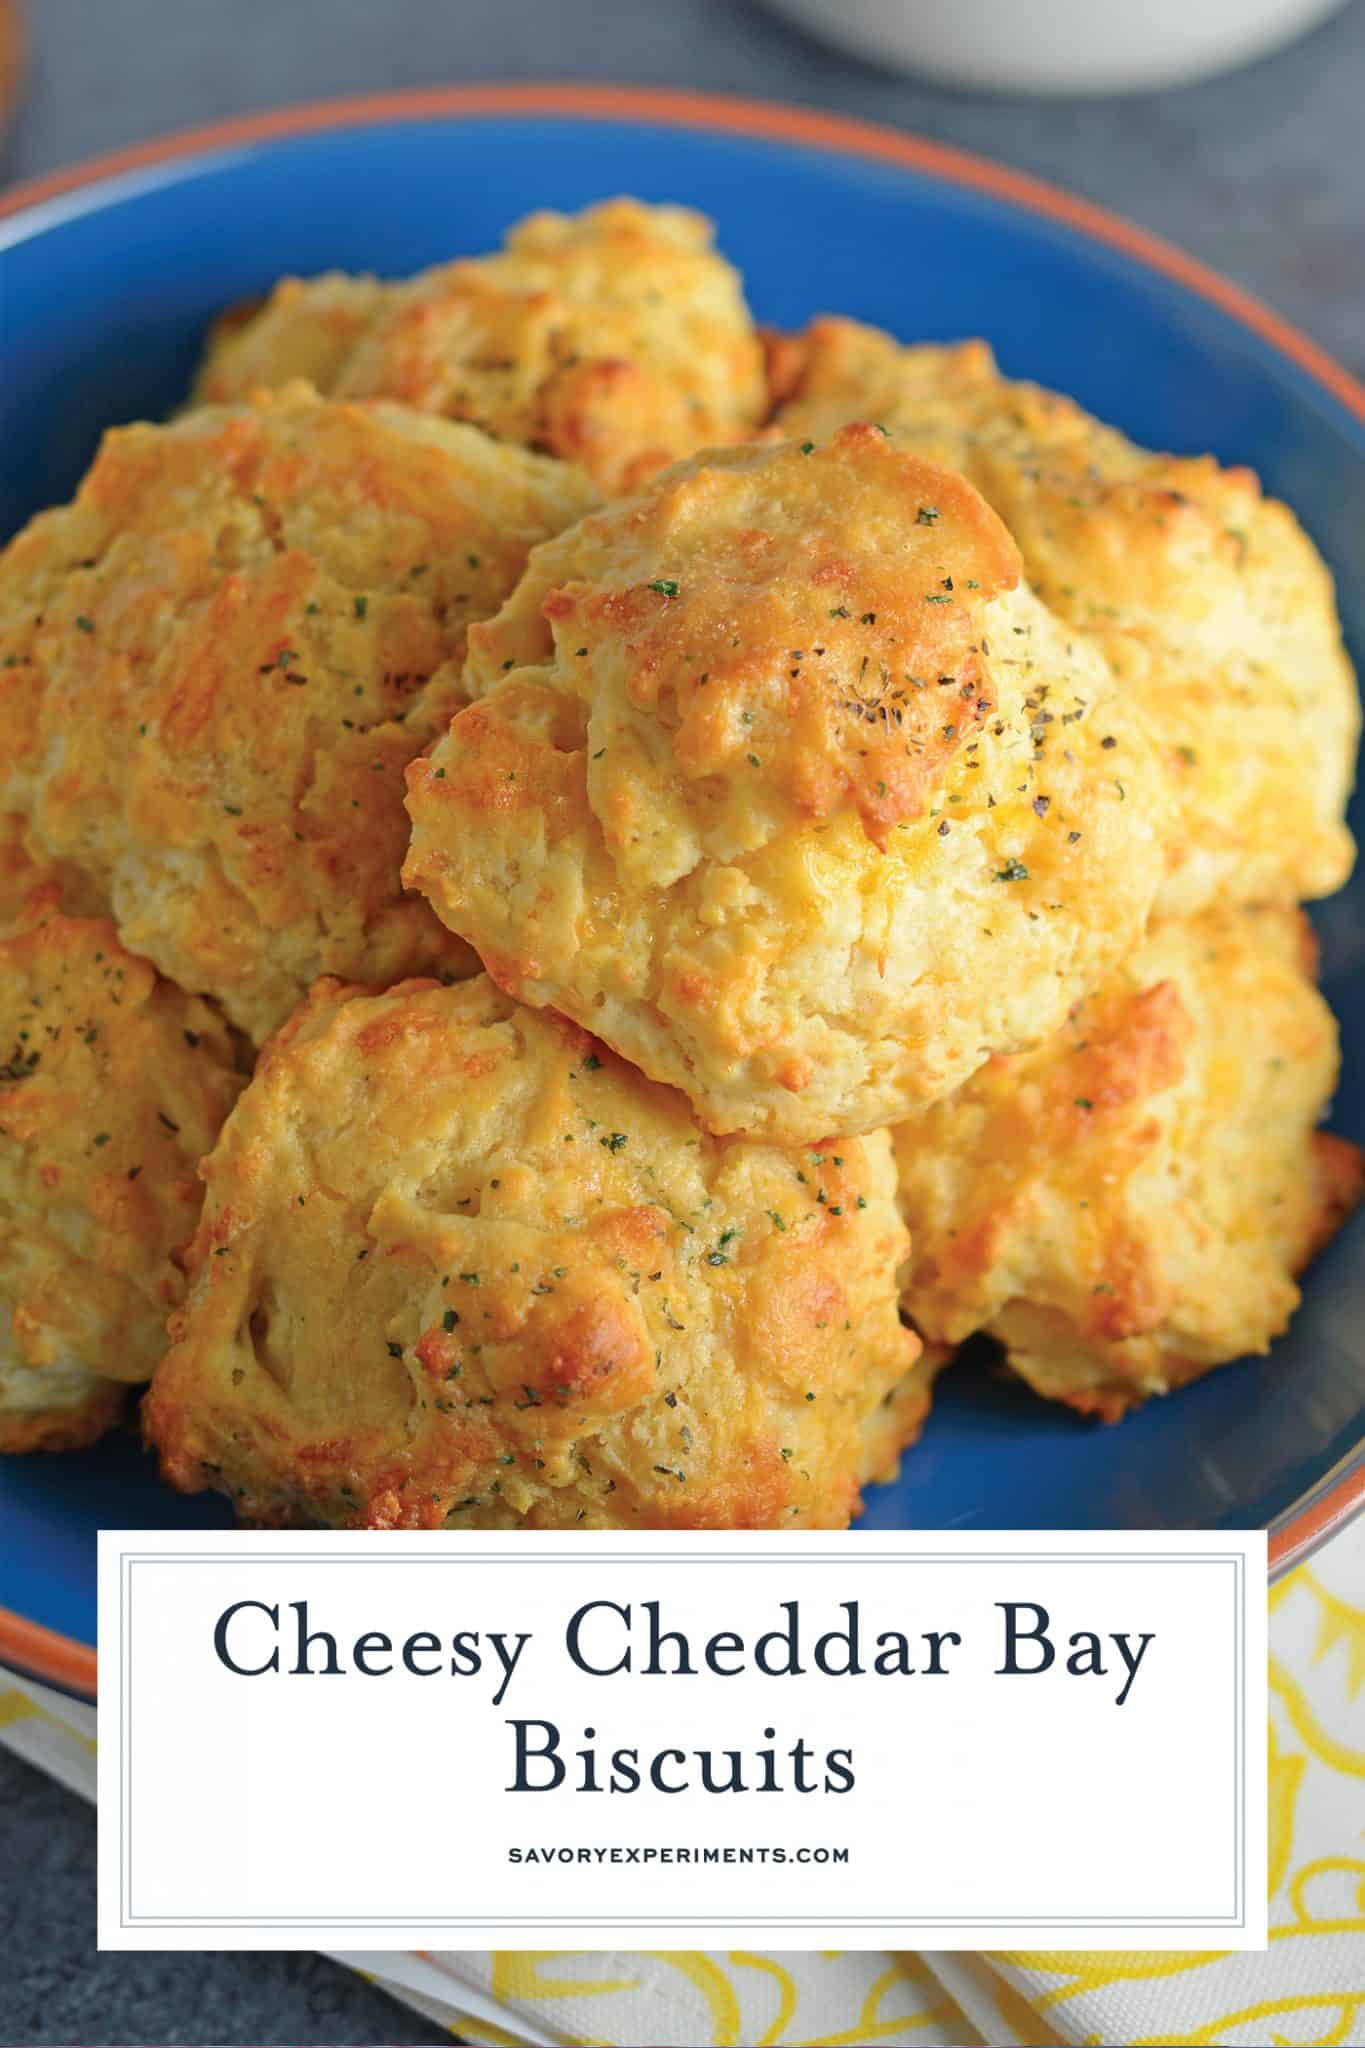 These copycat Red Lobster Cheddar Bay Biscuits are so easy to make you will make them for dinner every night! And they only take 20 minutes! #redlobsterbiscuits #cheddarbay #garliccheddarbiscuits www.savoryexperiments.com